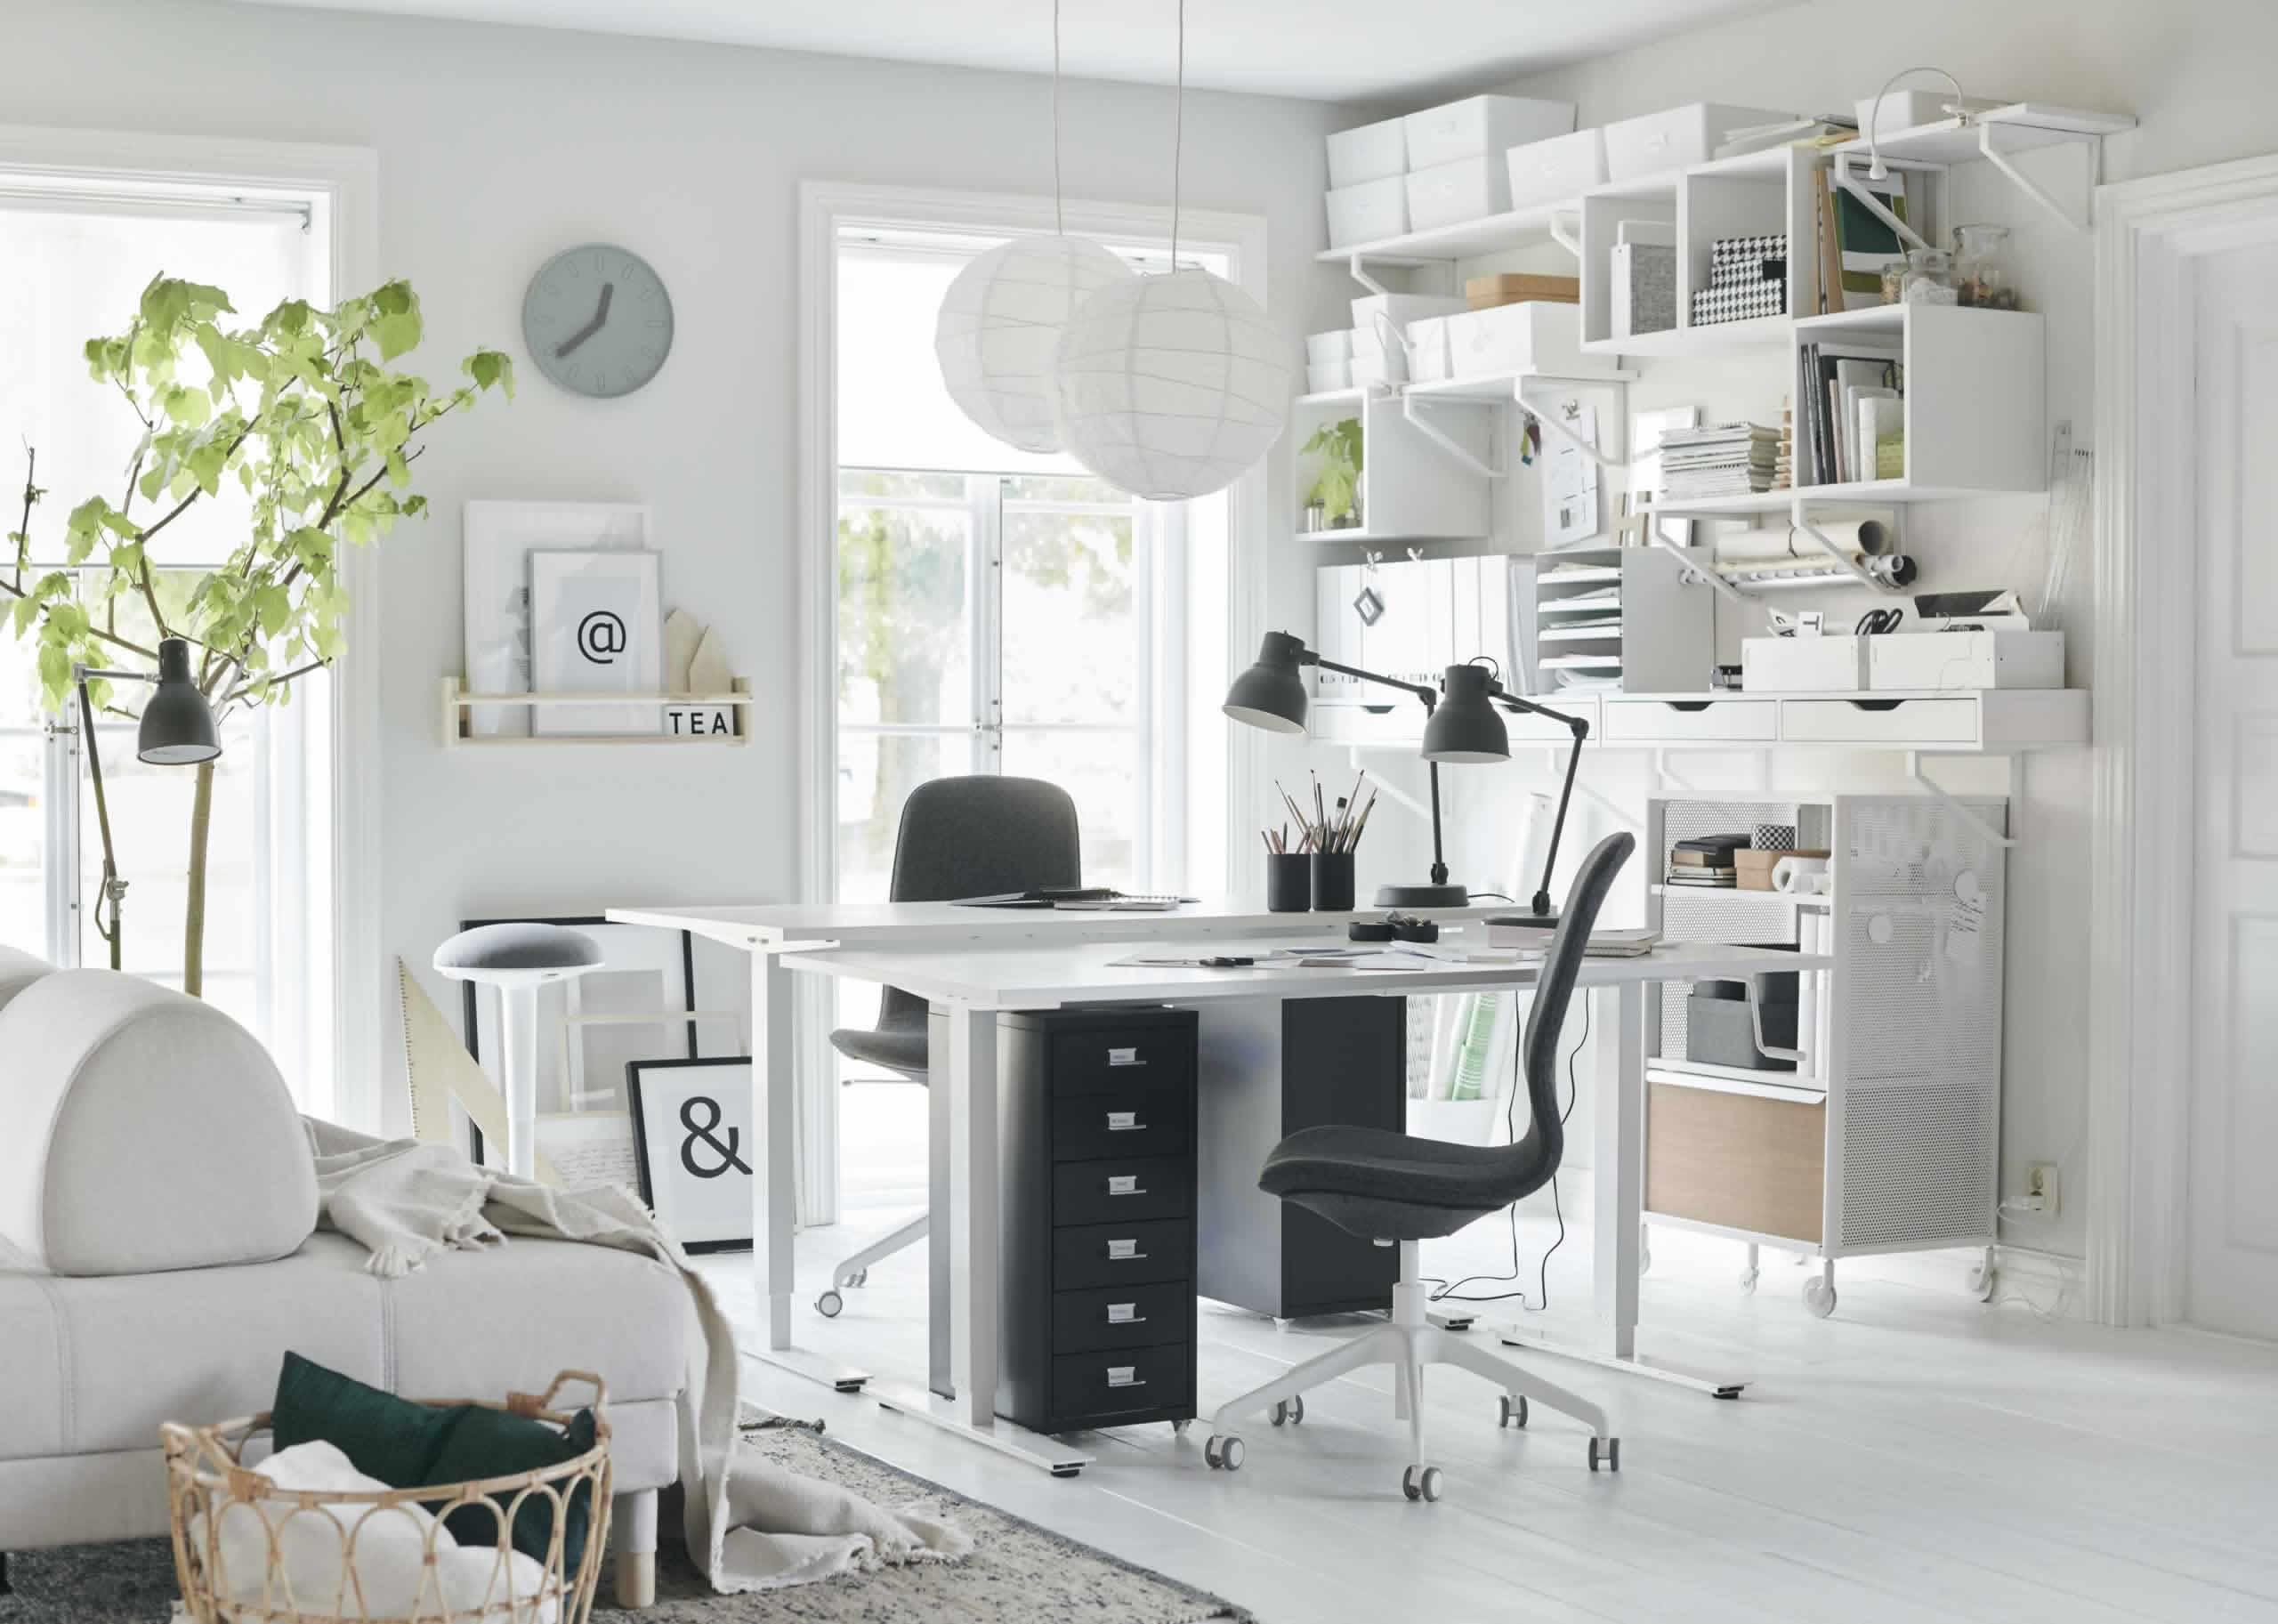 IKEA Ideas - A flexible home office in the living room